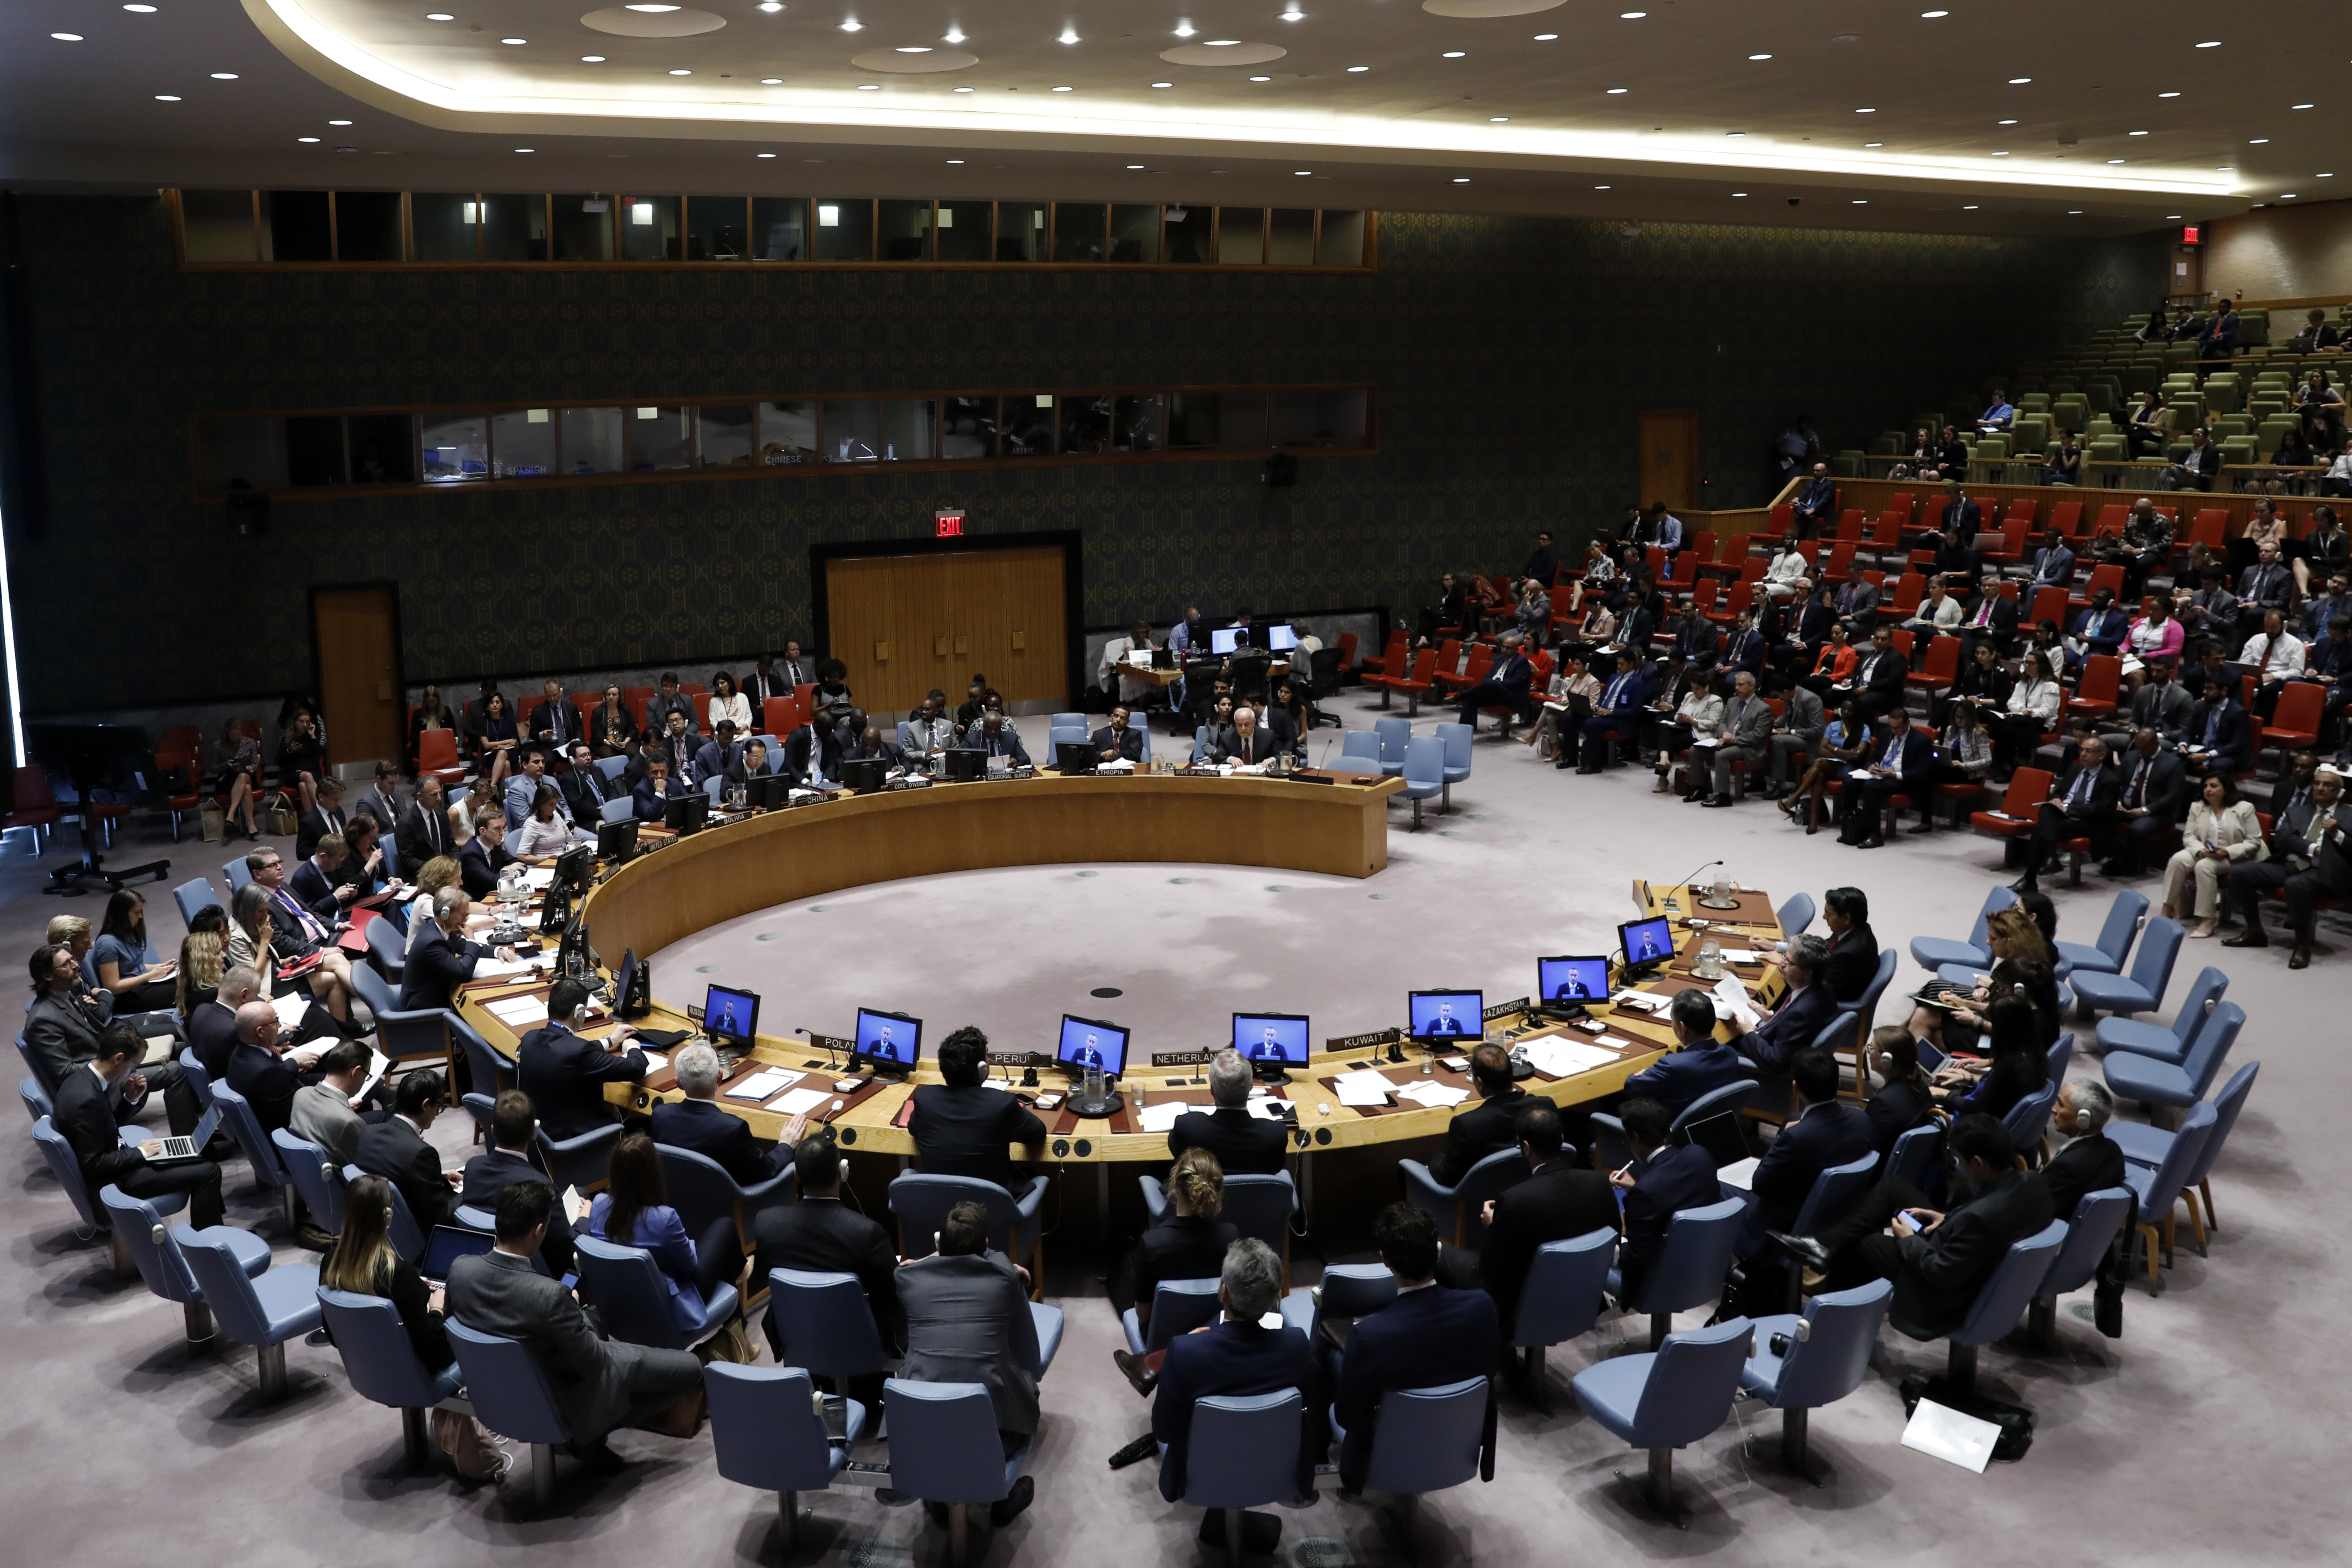 Photo taken on July 24, 2018 shows a general view of a United Nations Security Council meeting at the UN headquarters in New York, July 24, 2018.